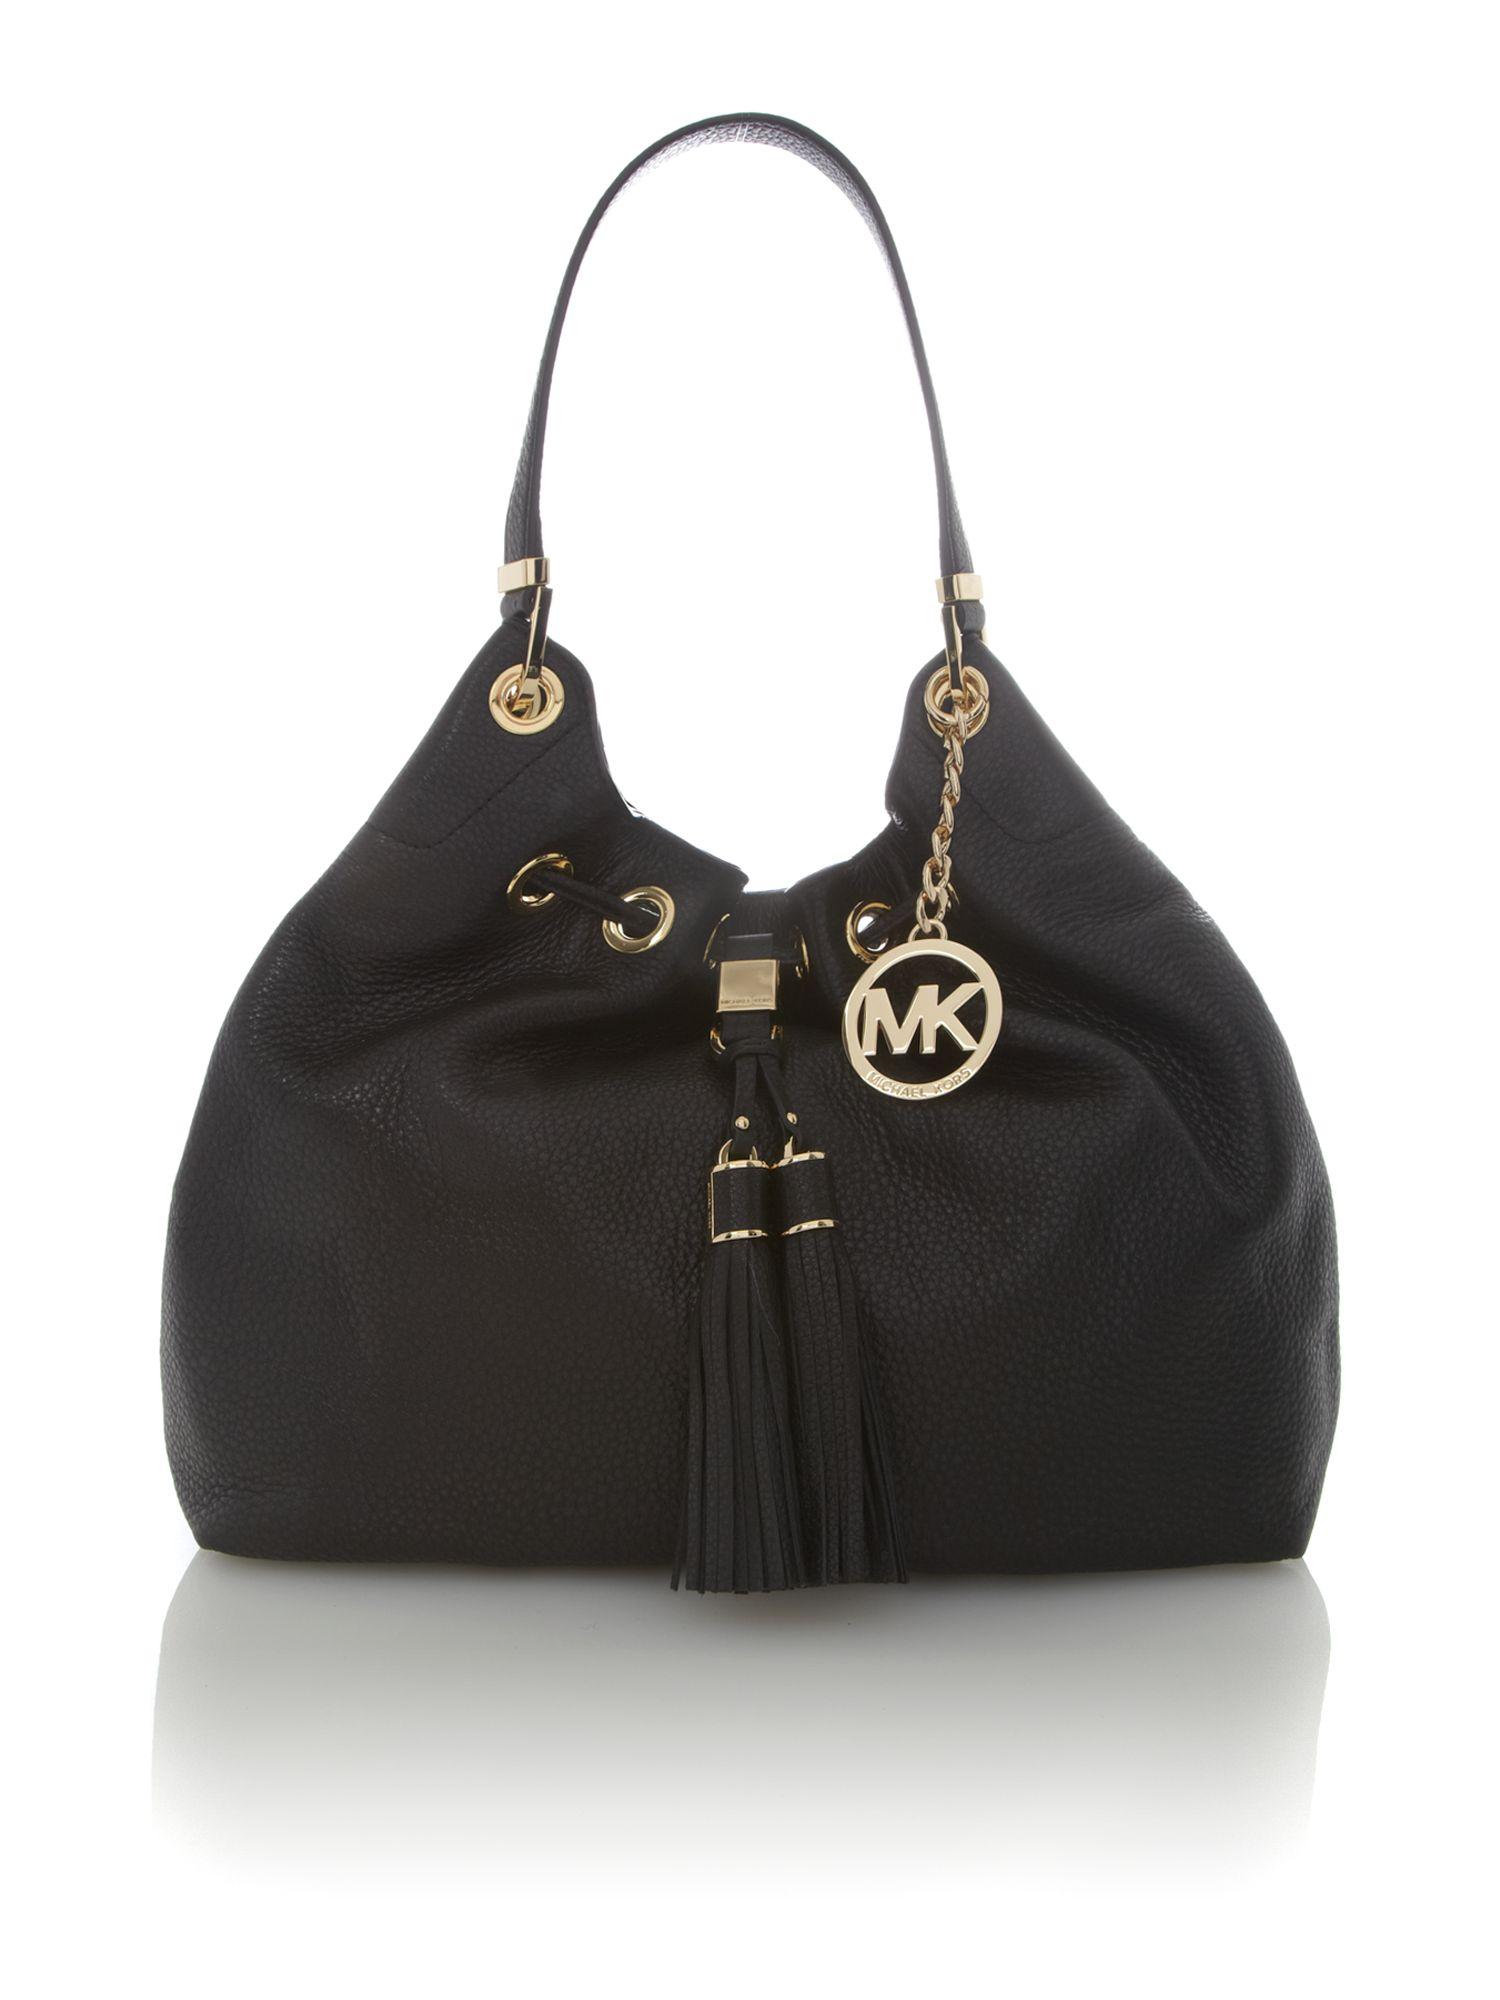 michael kors middleton black hobo bag in black lyst. Black Bedroom Furniture Sets. Home Design Ideas